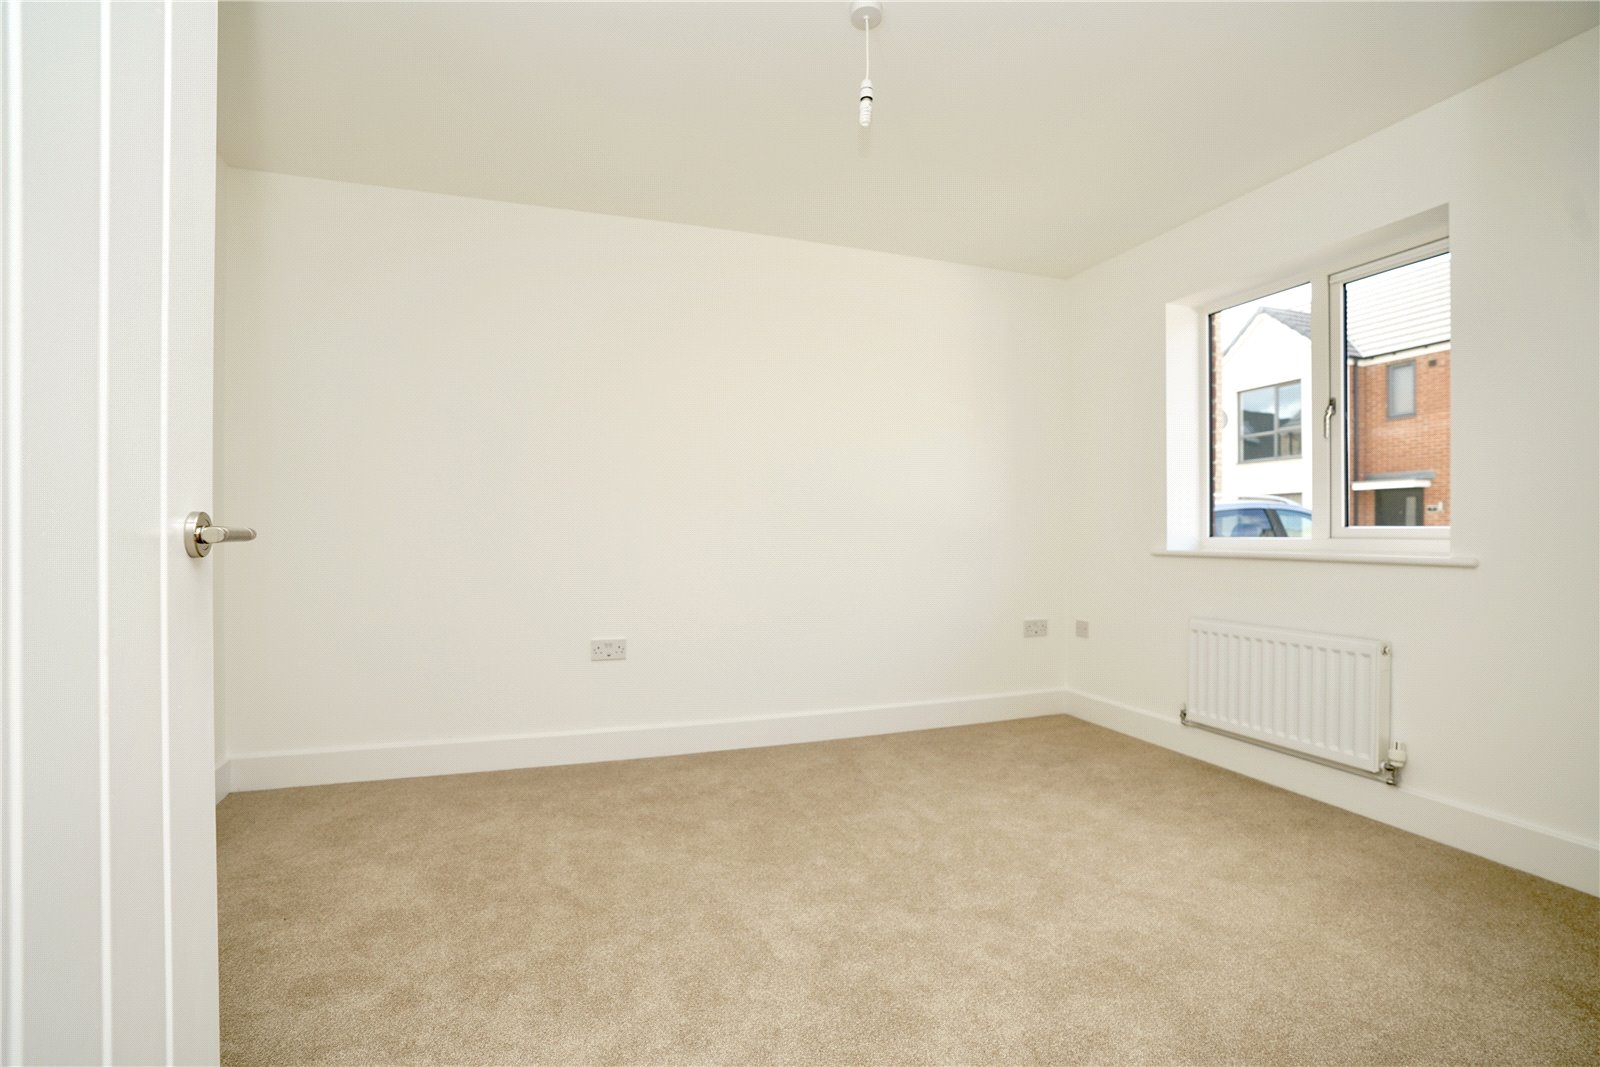 3 bed bungalow for sale in Whittlesey, PE7 1RU  - Property Image 8